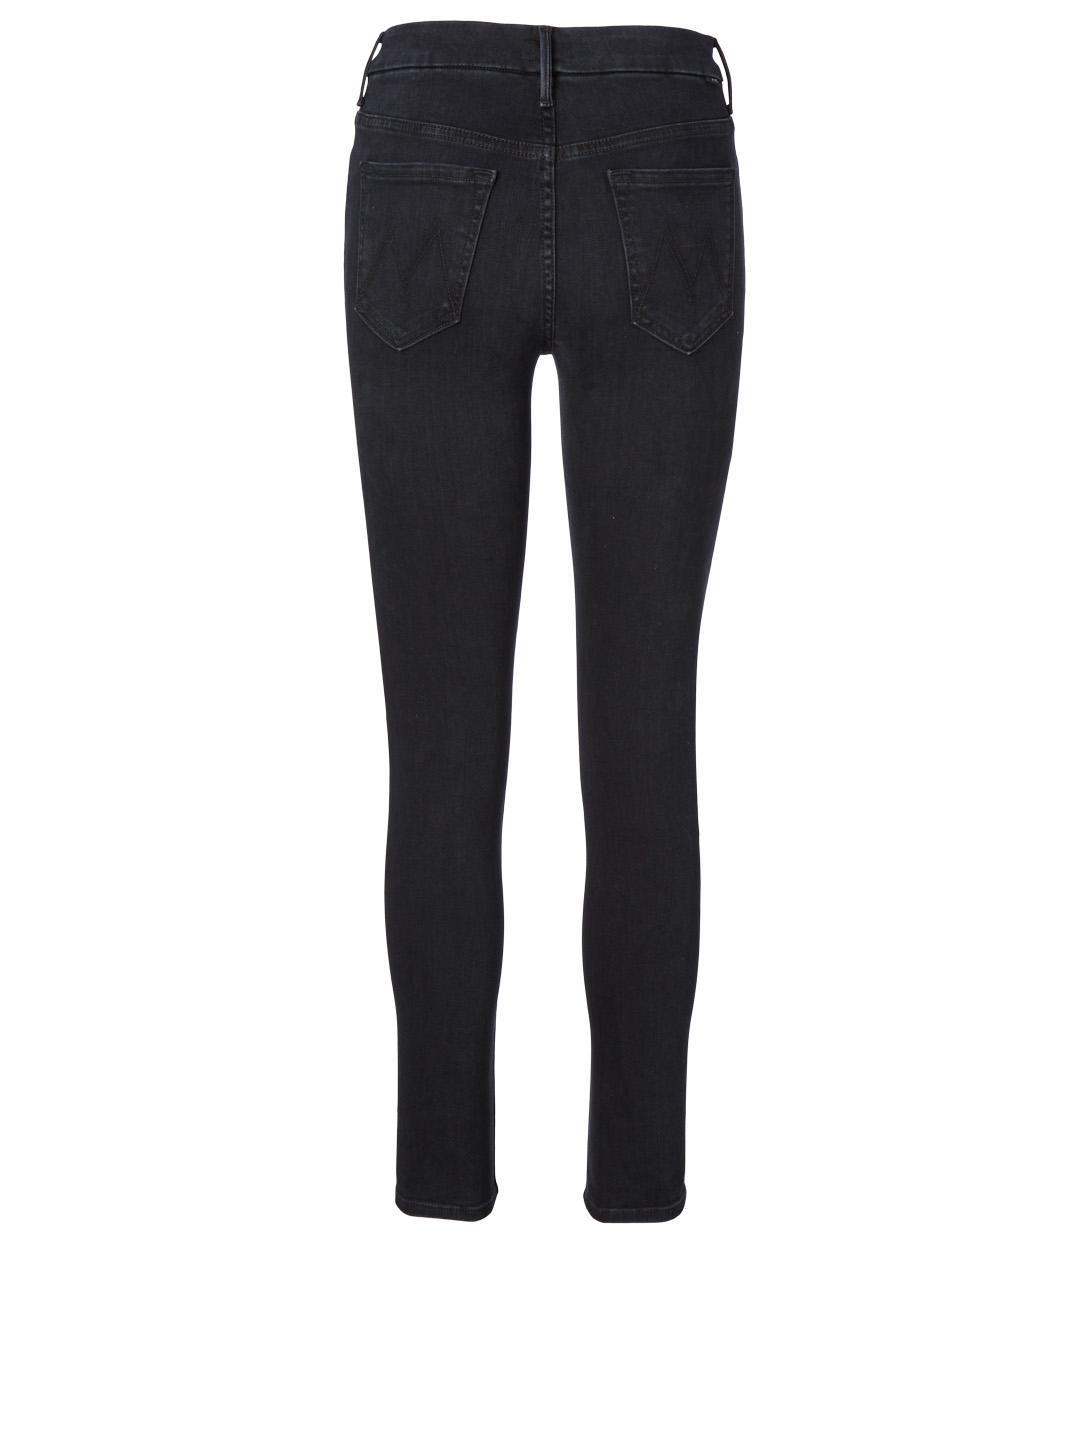 MOTHER High-Waisted Looker Jeans Women's Black